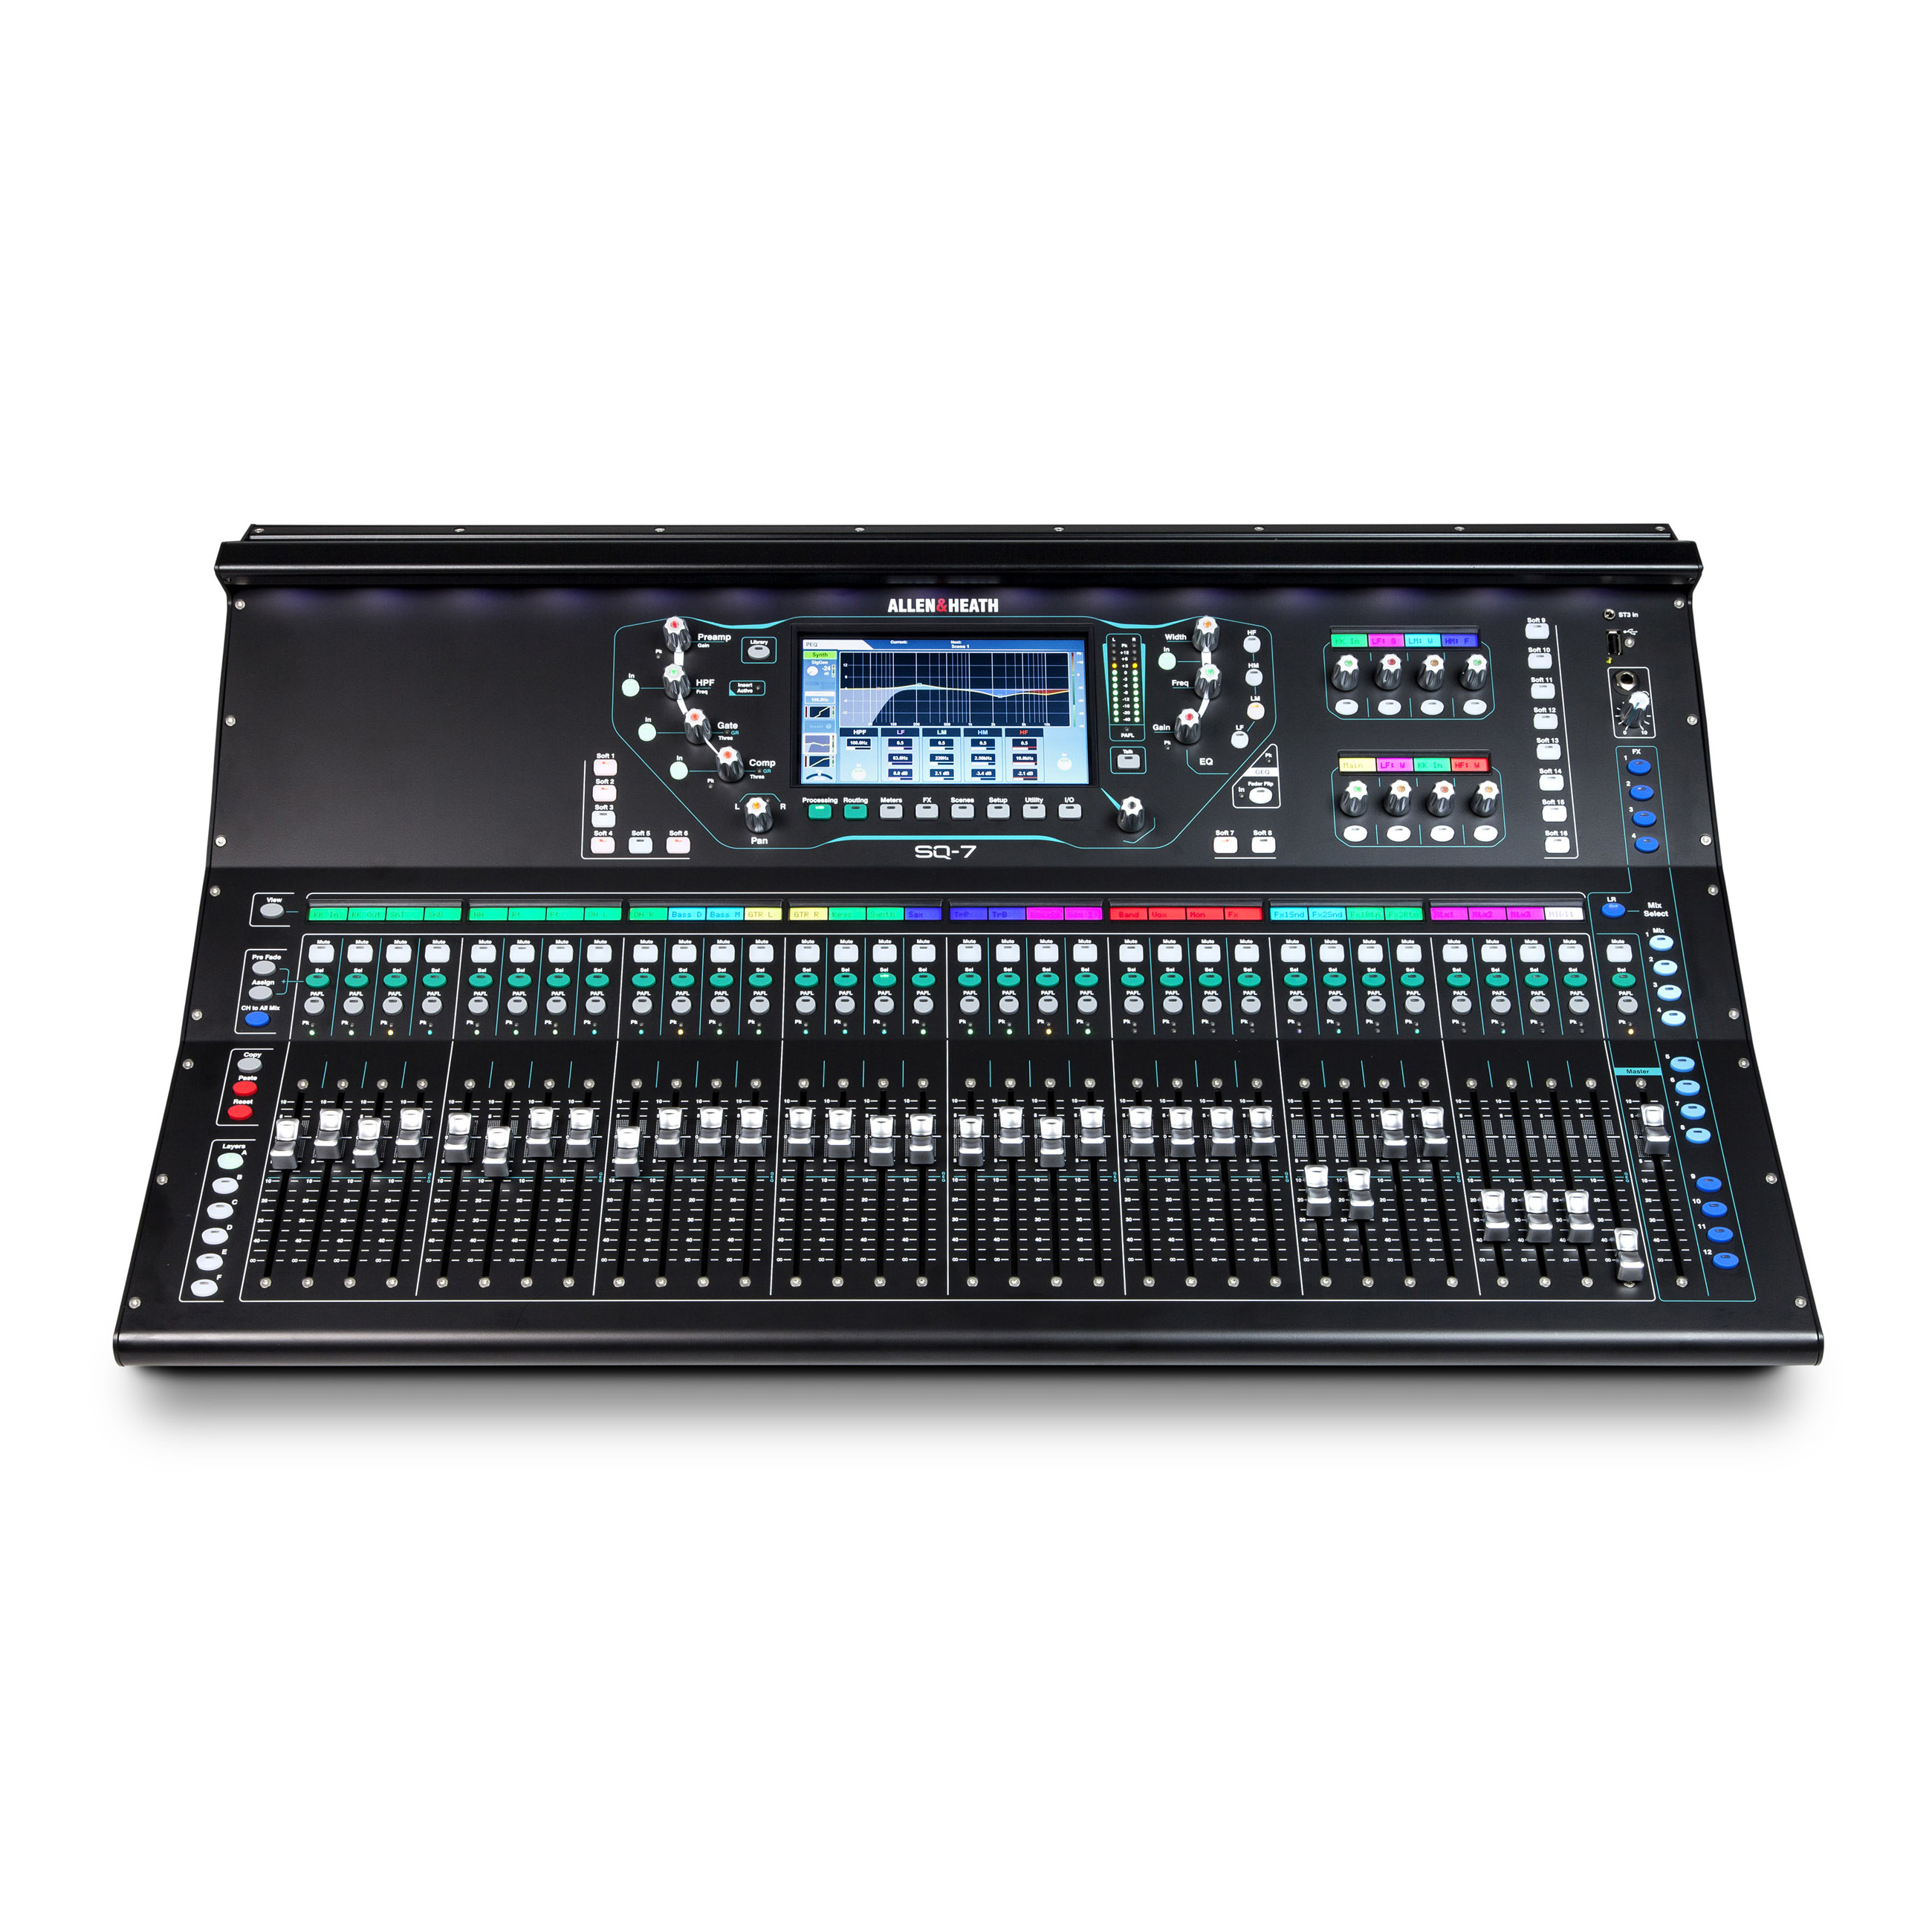 Allen & Heath SQ-7 48 Channel / 36 Bus Digital Mixer Bundle with 2x Powered Loudspeakers and Accessories